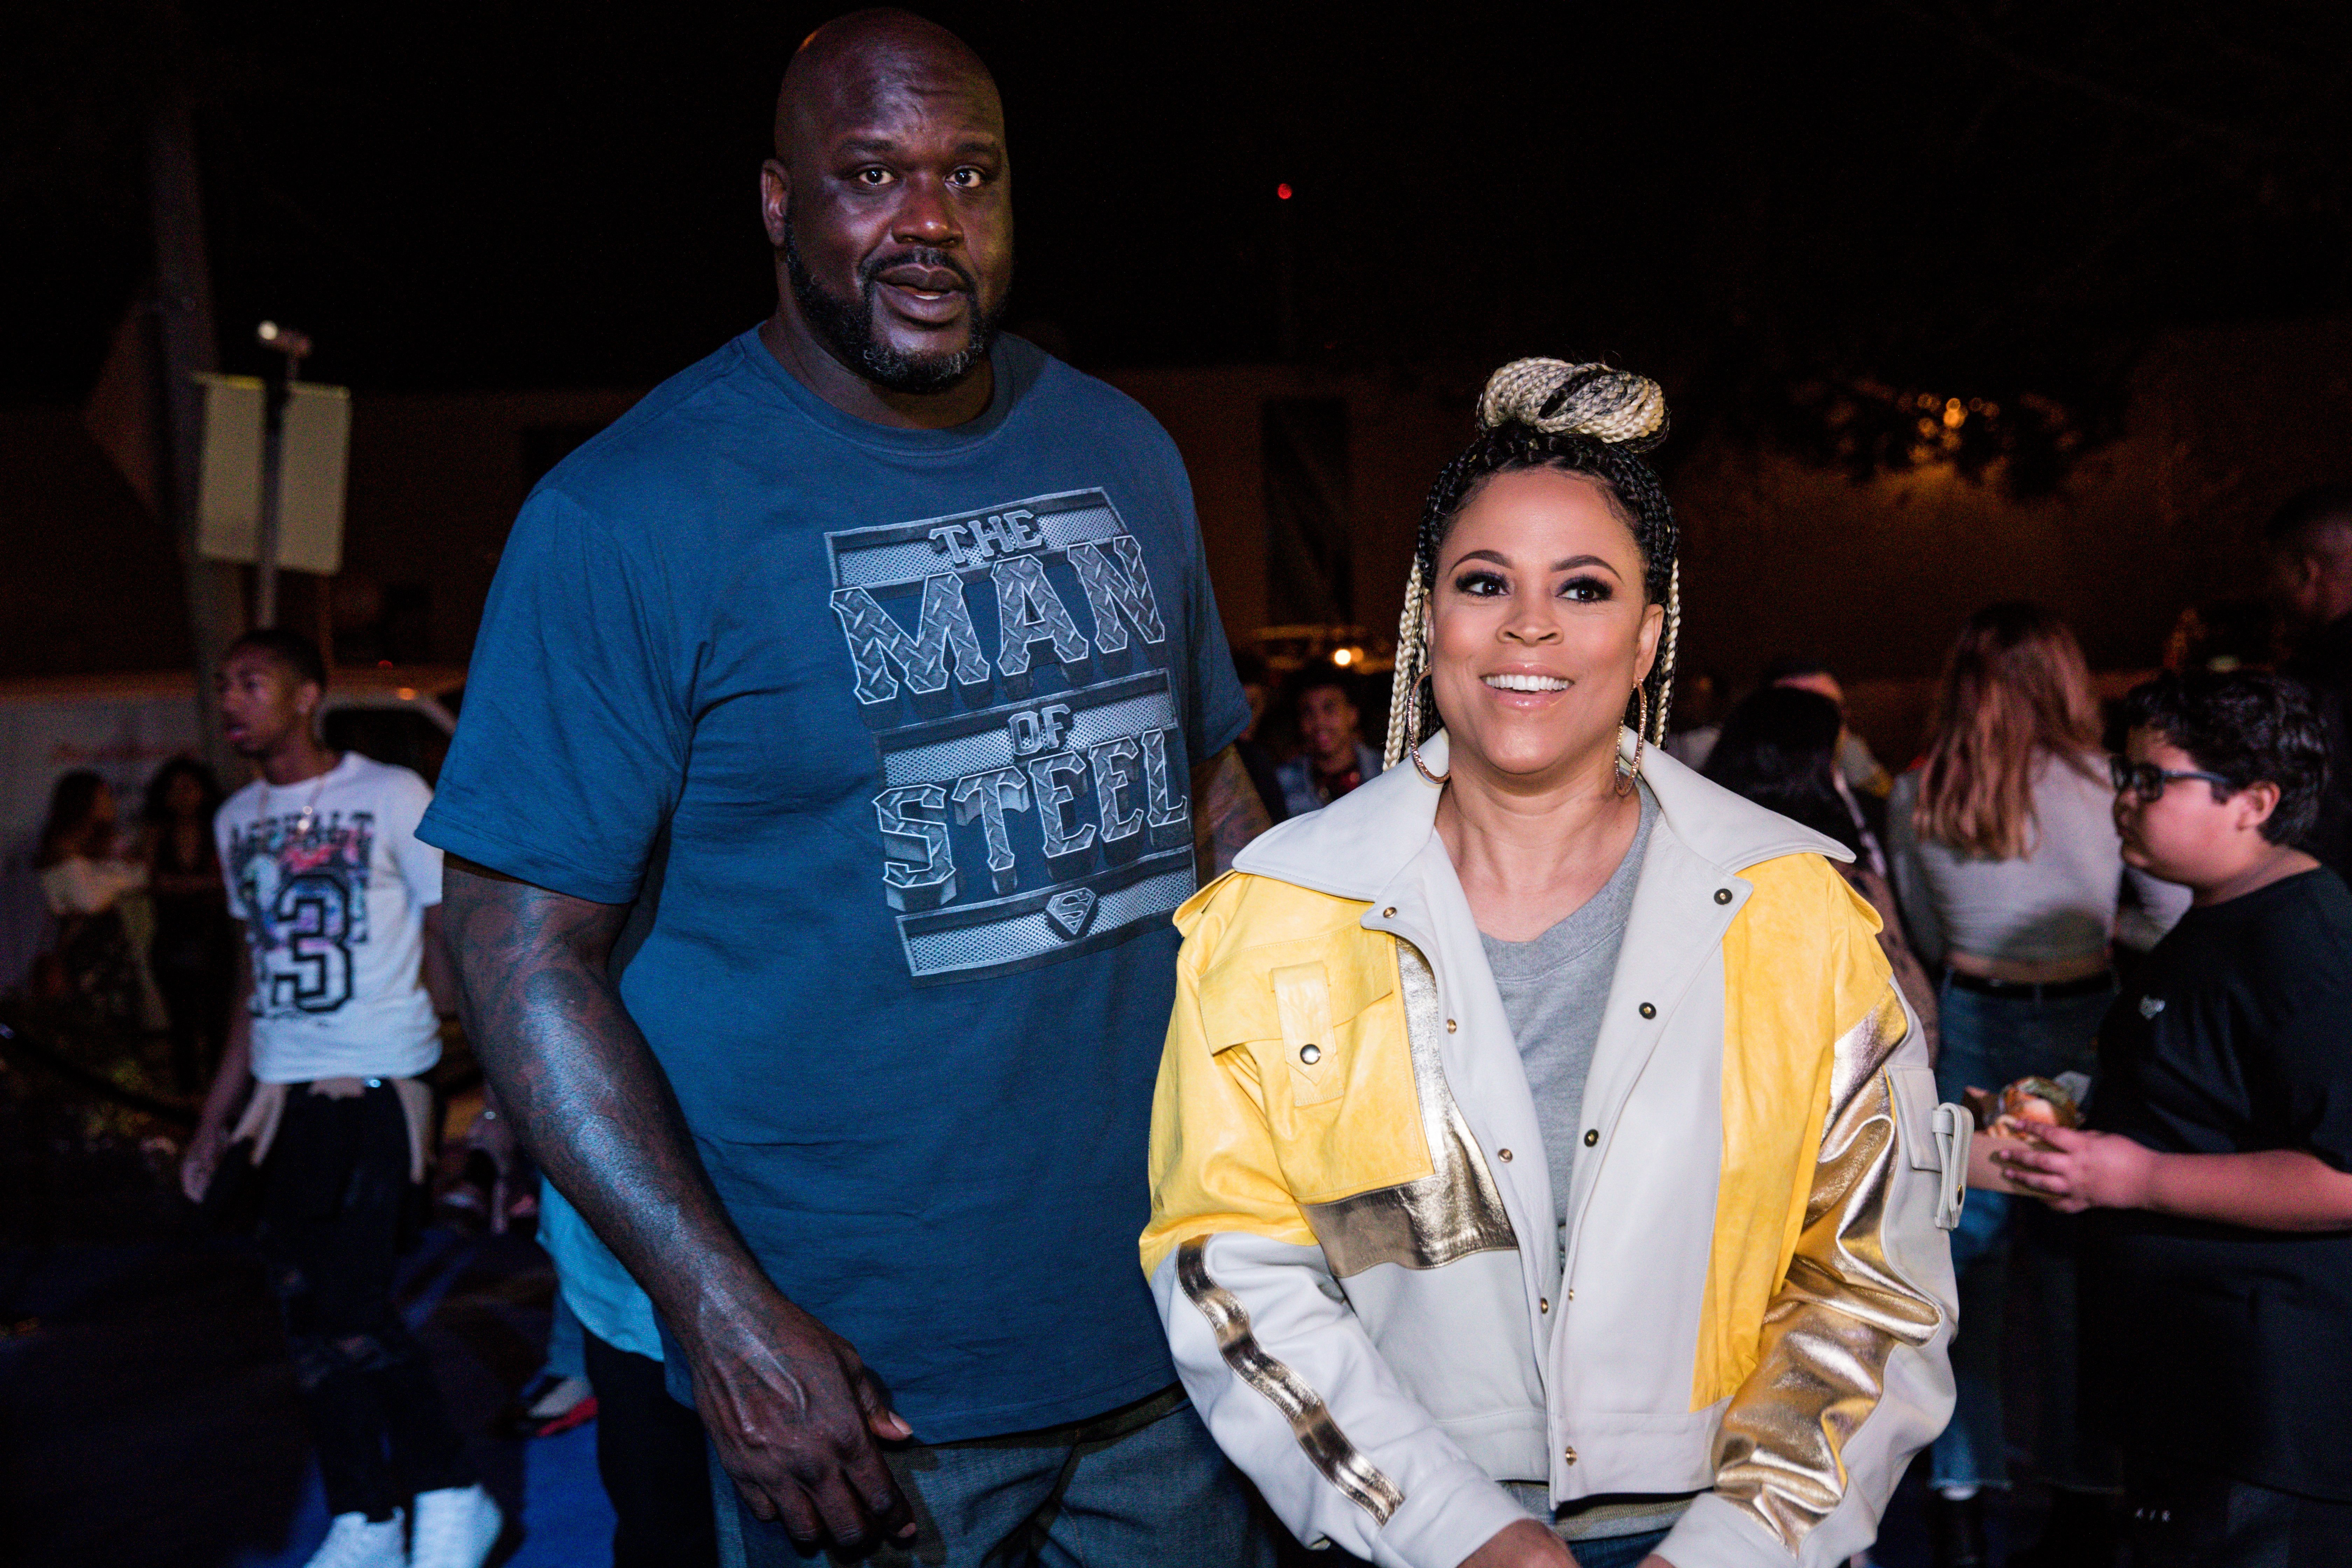 Shaunie O'Neal and Shaquille O'Neal celebrate Shareef O'Neal's 18th birthday party. Jan. 13, 2018. | Photo: GettyImages